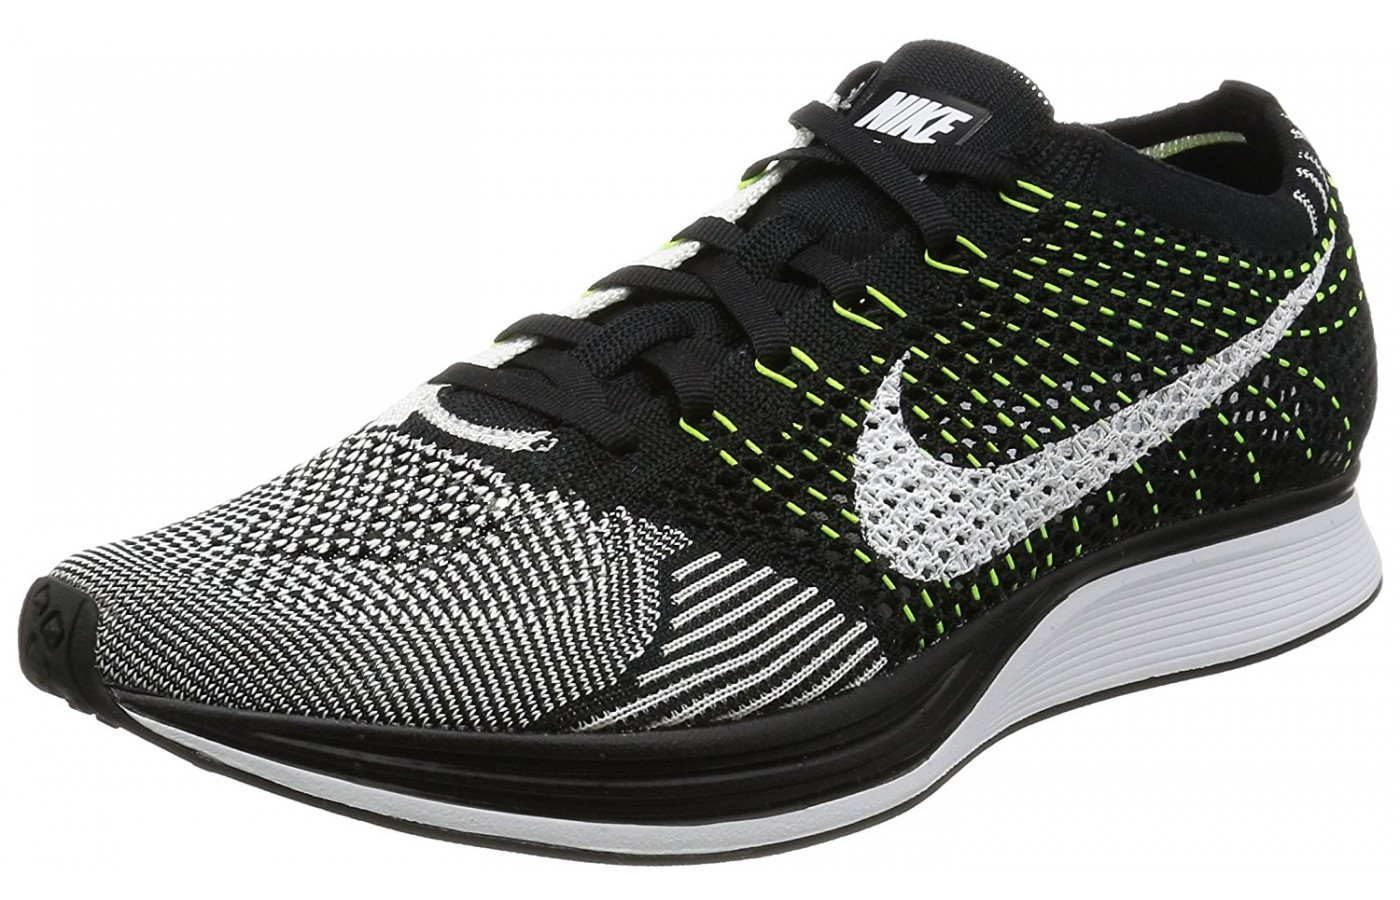 1fba85815842 Nike Flyknit Racer Reviewed for Performance in 2019